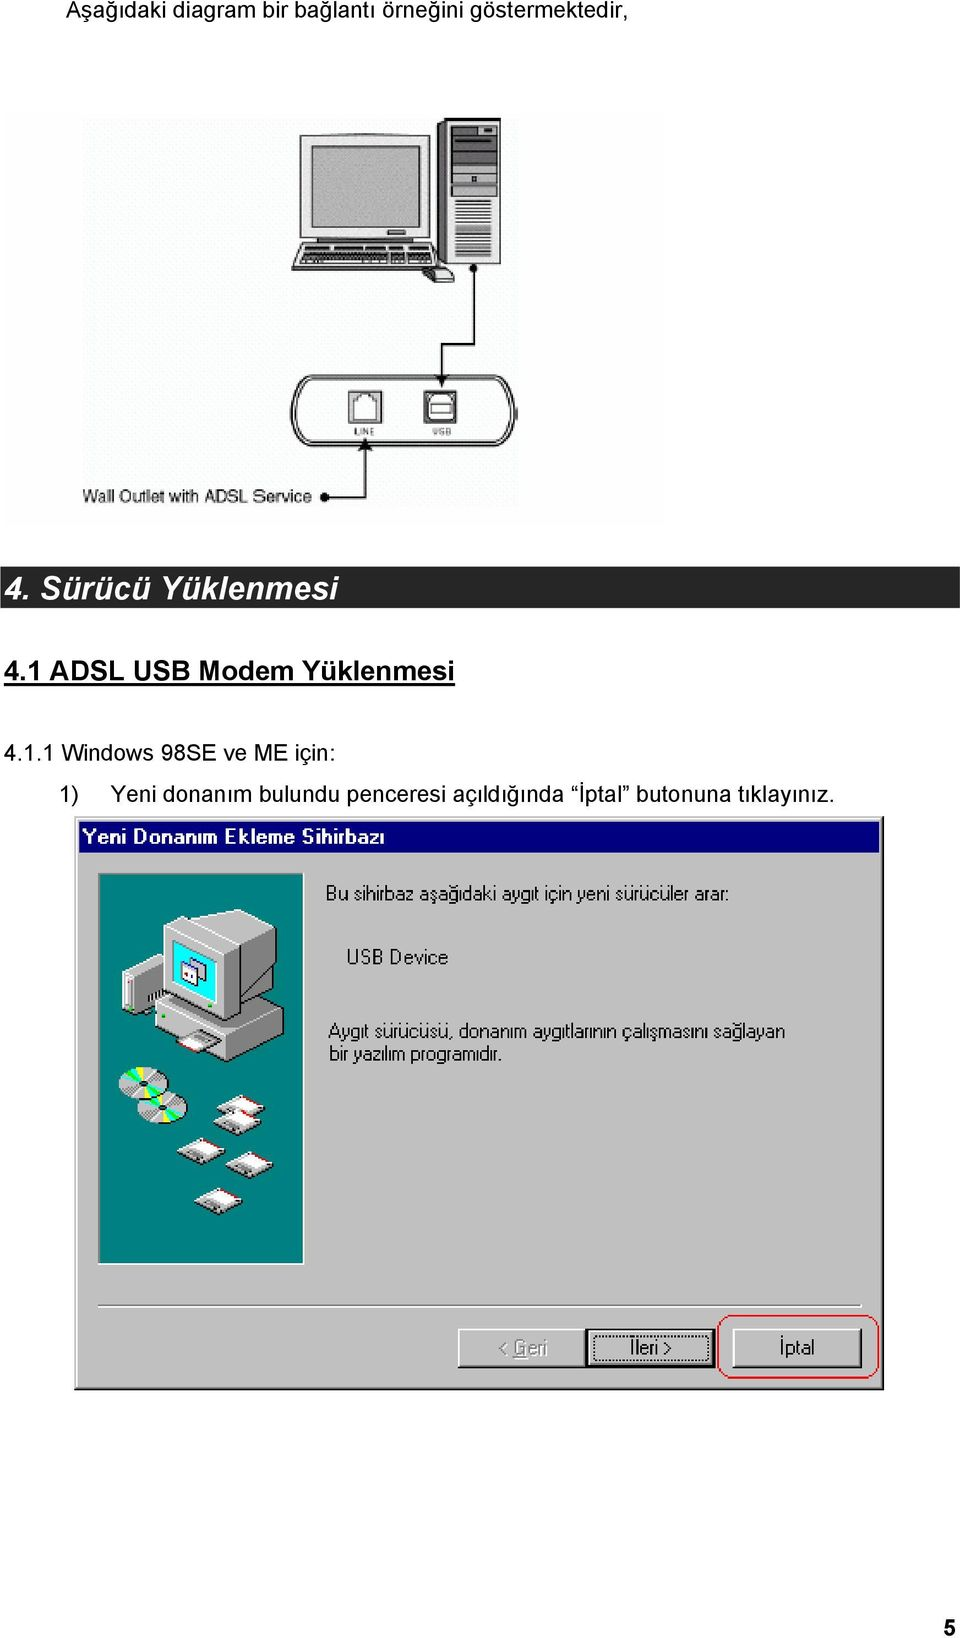 1 ADSL USB Modem Yüklenmesi 4.1.1 Windows 98SE ve ME